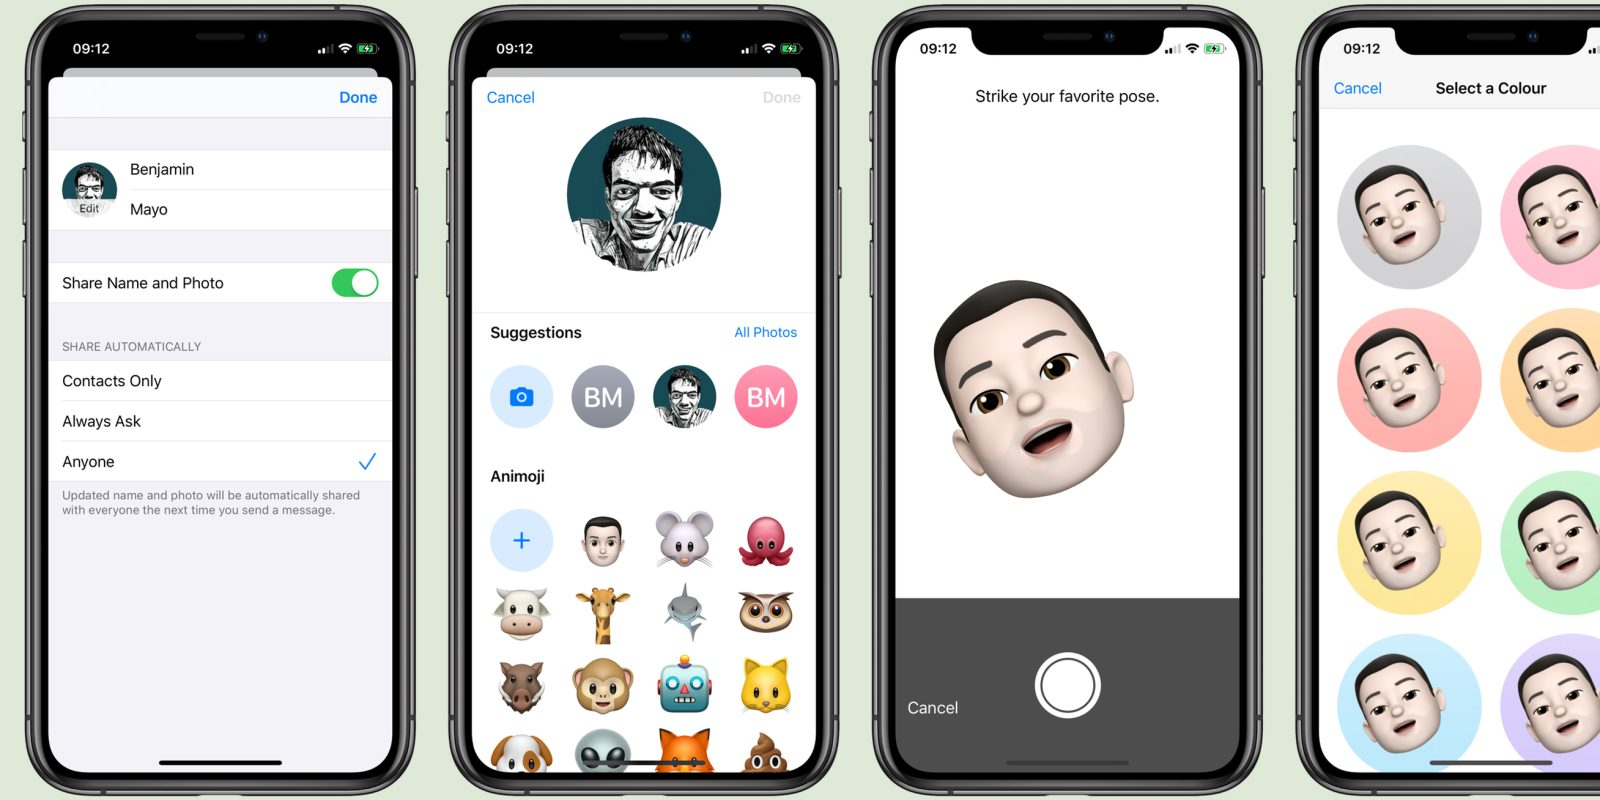 iOS 13 Messages: How to choose profile photo and display